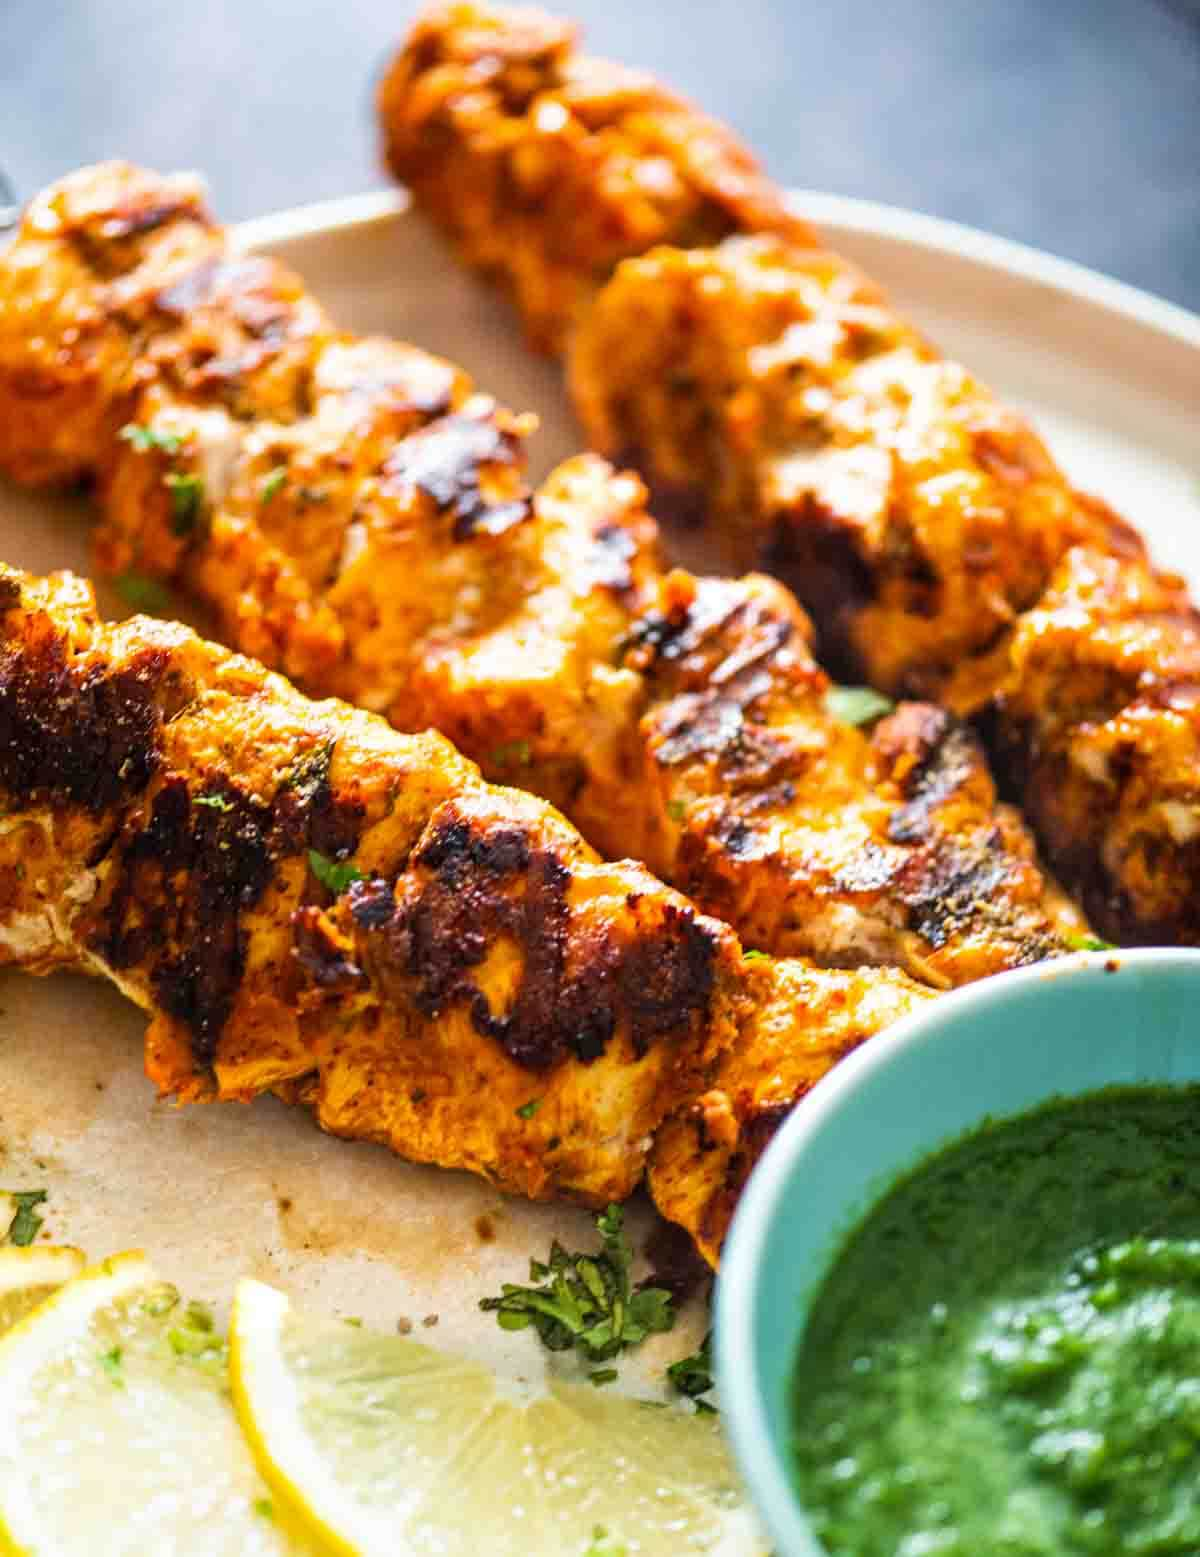 grilled chicken with green chutney and lemons on a plate